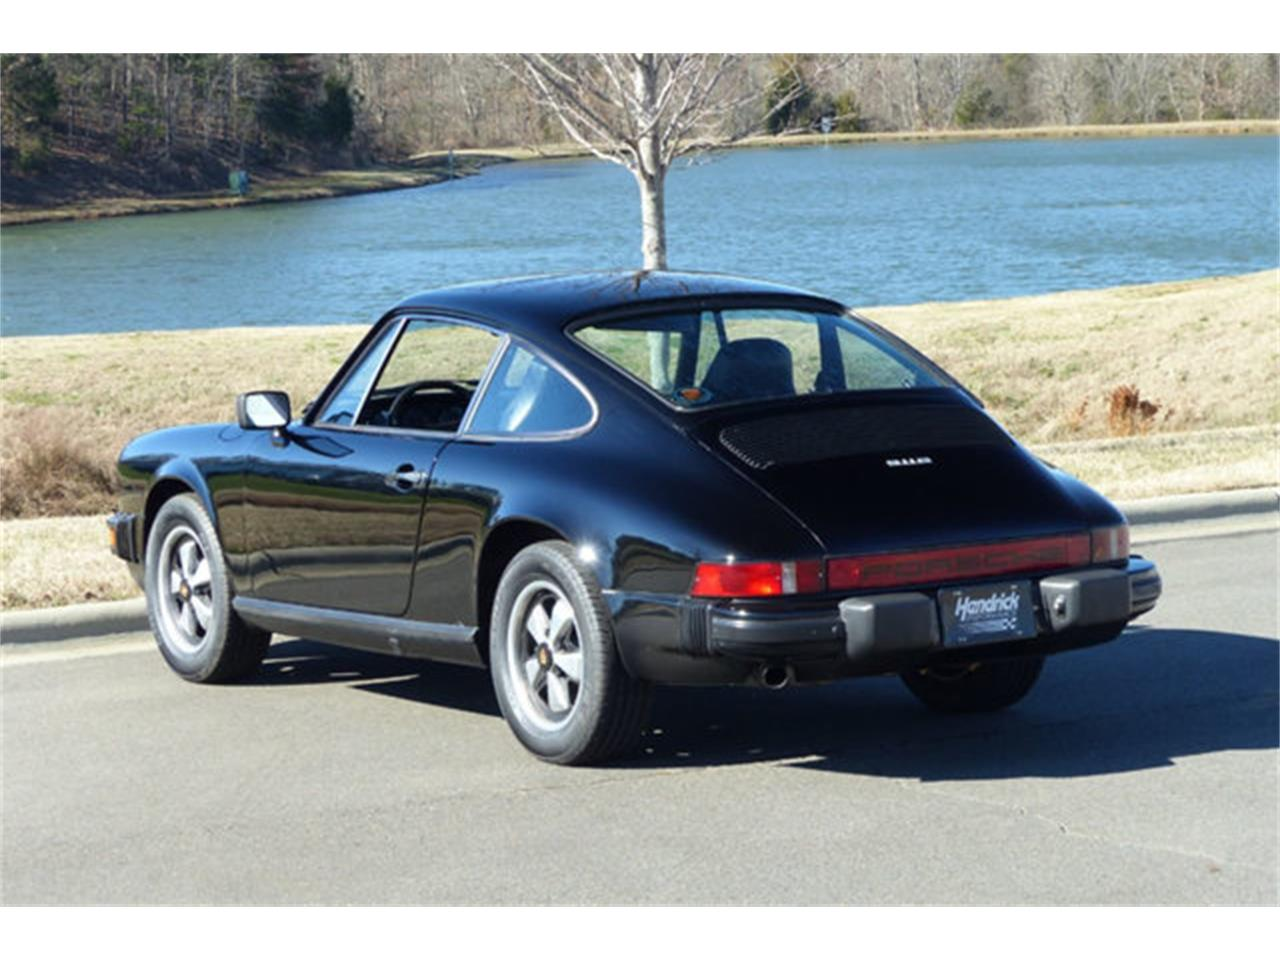 Large Picture of 1977 Porsche 911 Carrera S located in North Carolina - $58,990.00 - M2WU